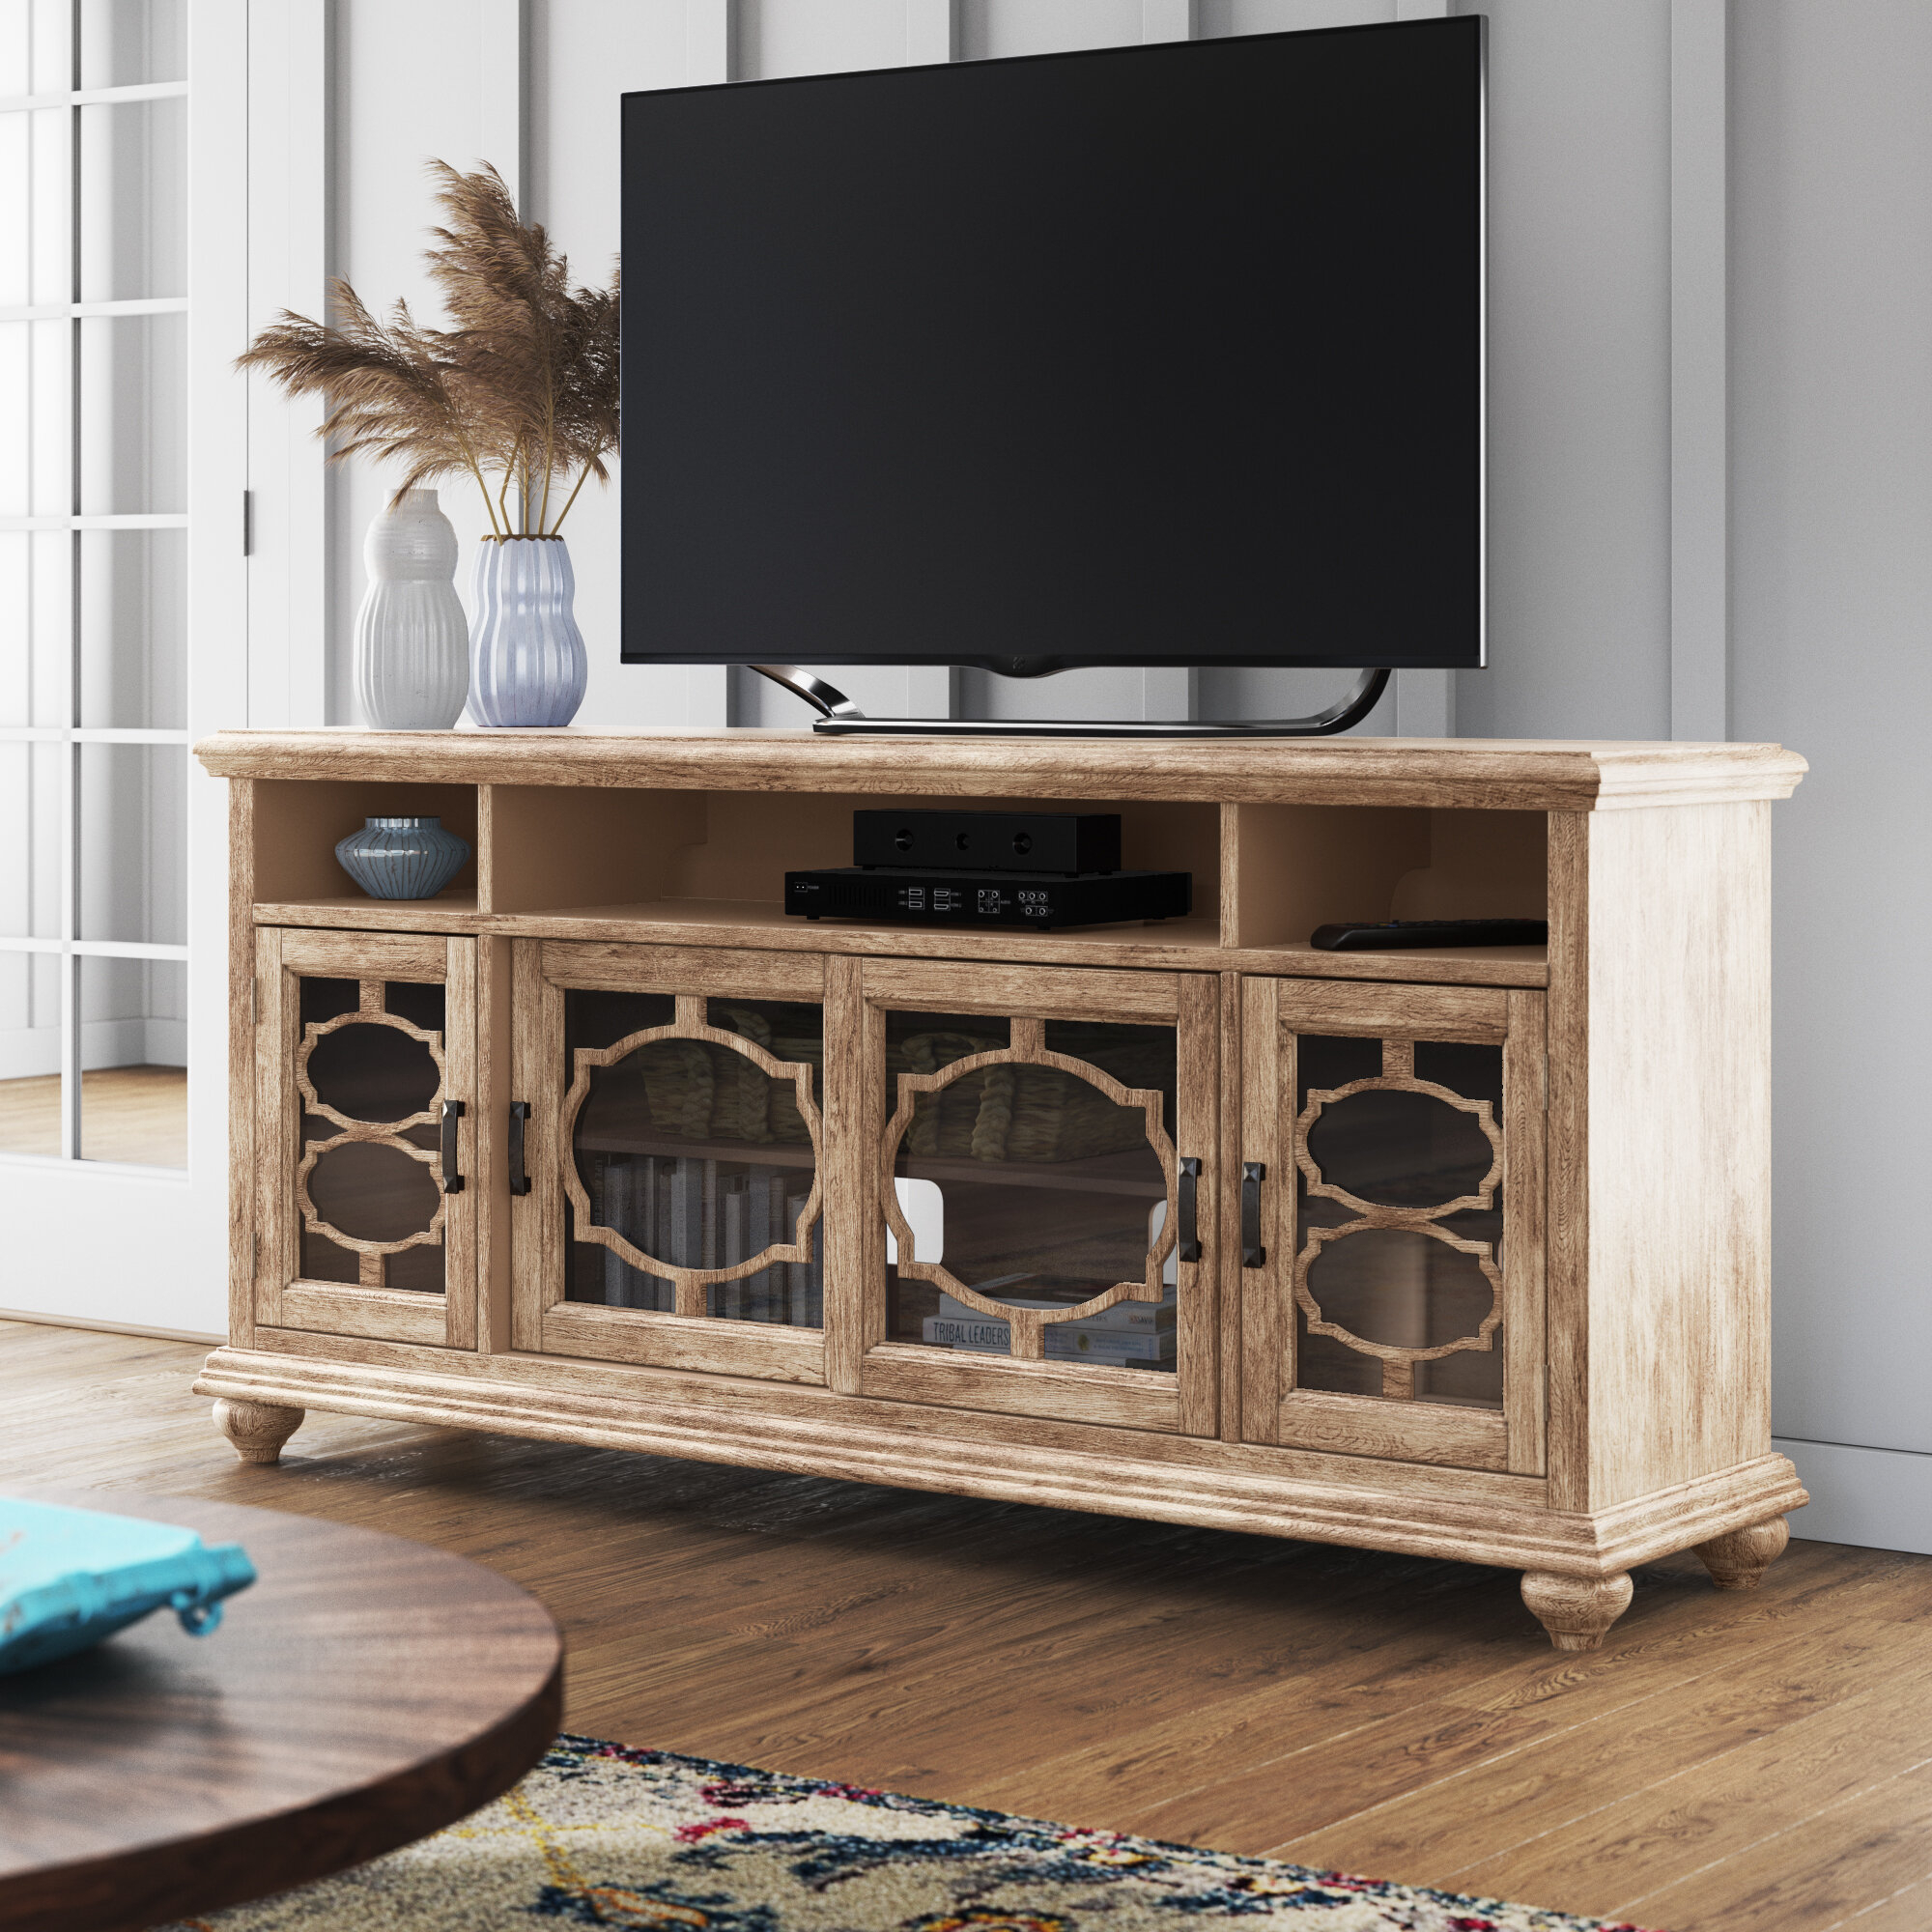 "West Newbury Tv Stand For Tvs Up To 70"" within Colefax Vintage Tv Stands for Tvs Up to 78"" (Image 30 of 30)"